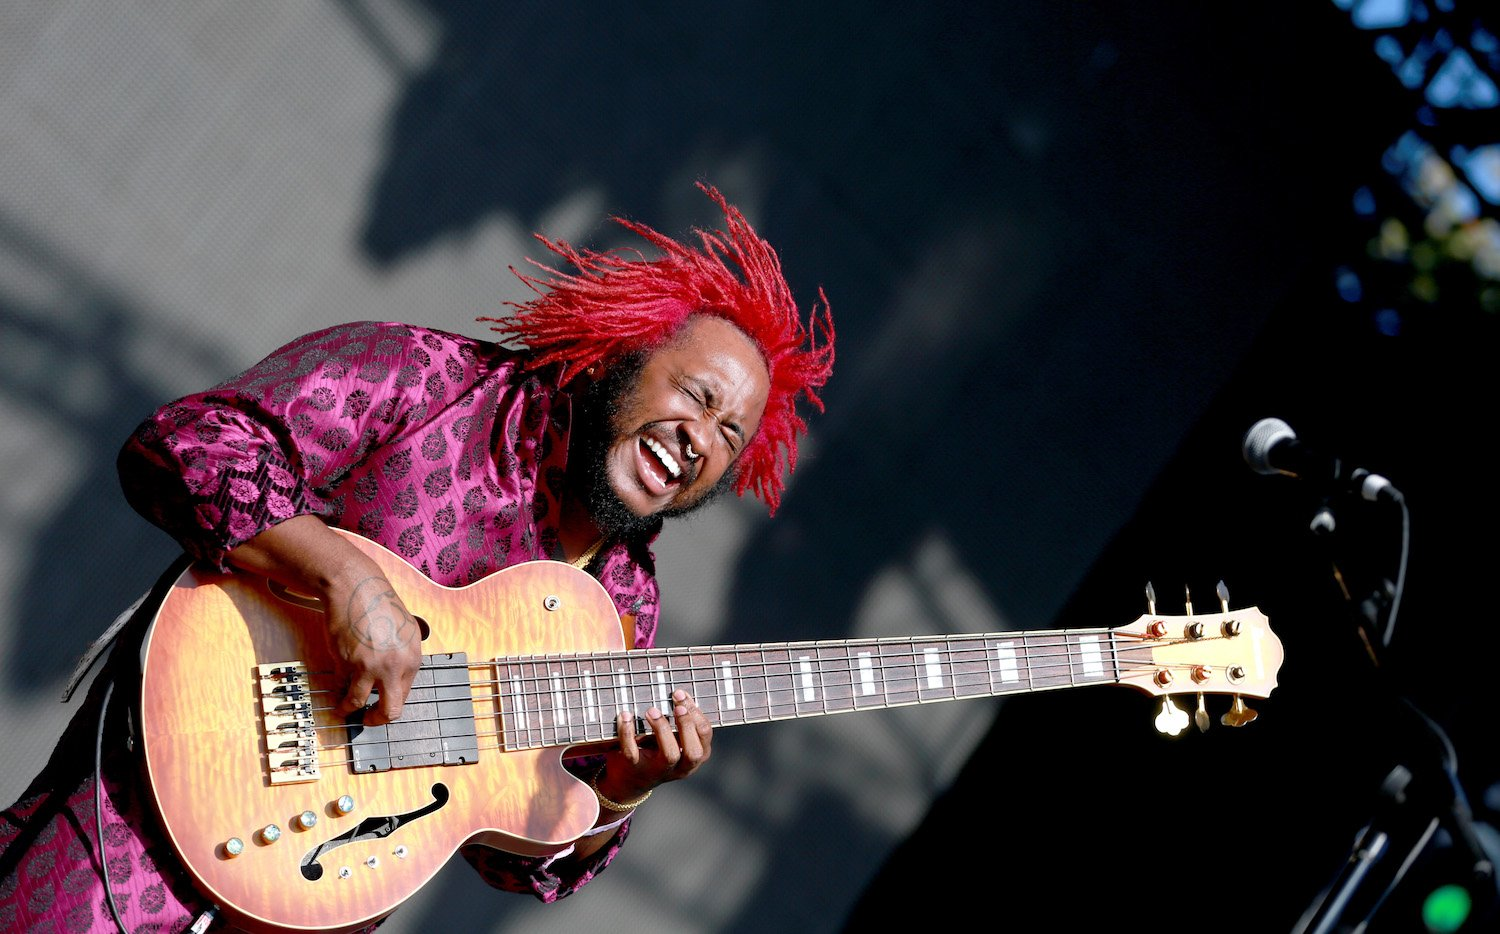 Listen to @Thundercat's new track 'Final Fight' https://t.co/lXE5mxIh0R https://t.co/BuWYEH6eYX